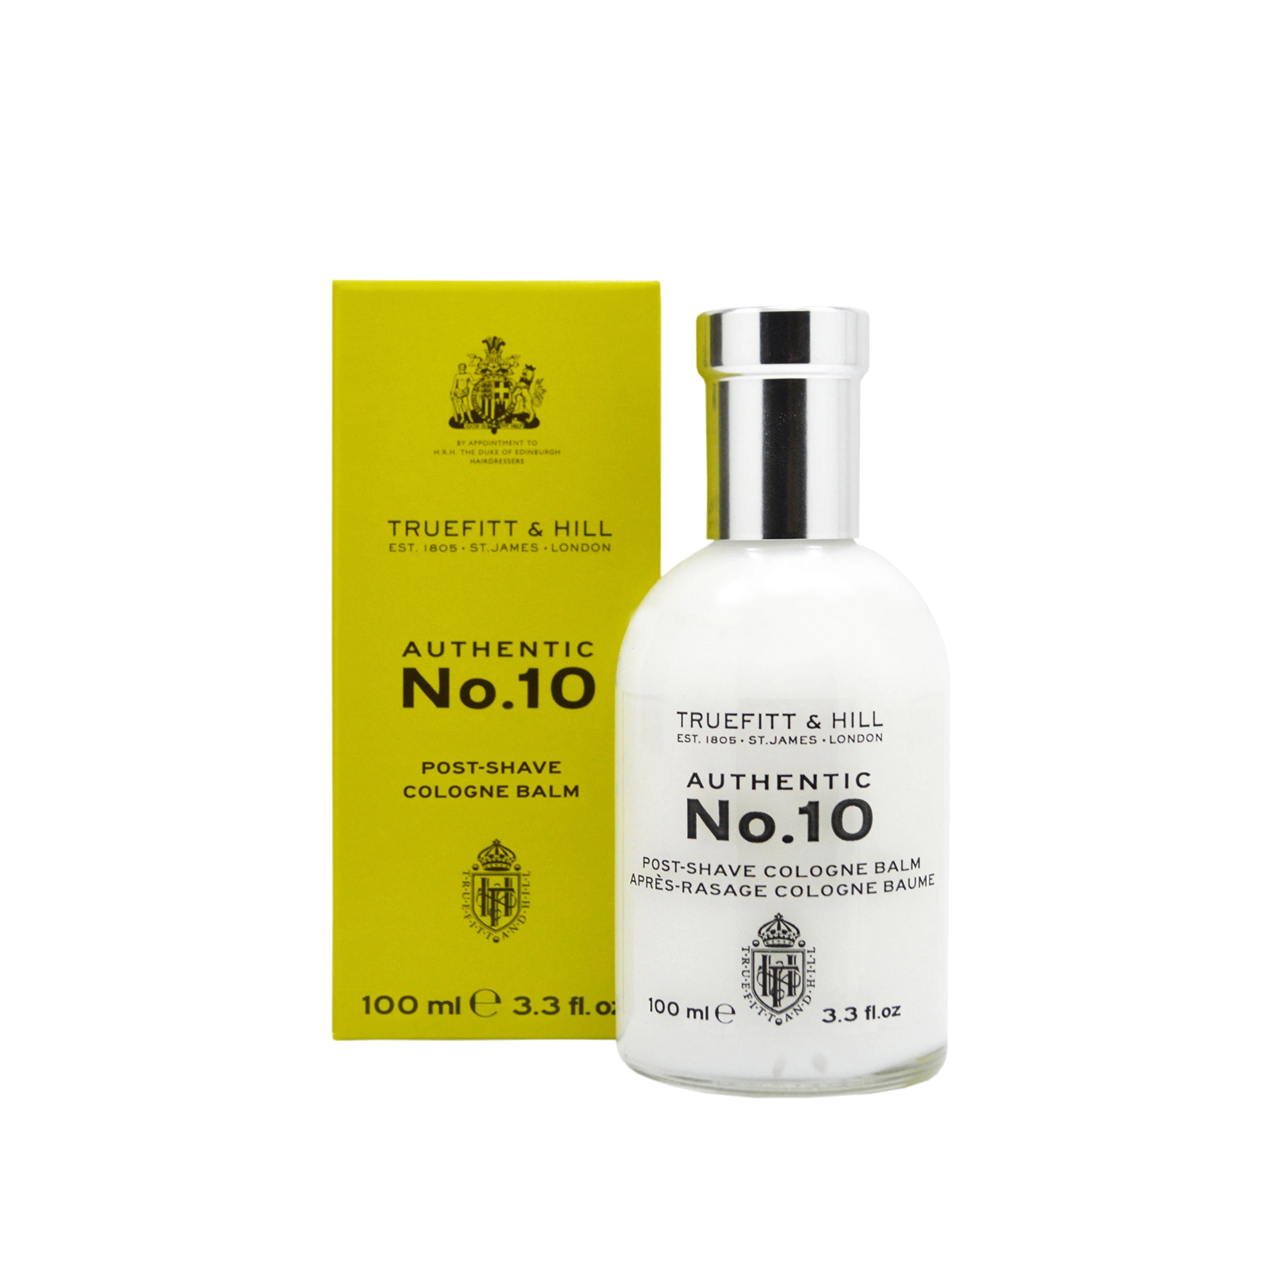 Authentic N°10 - Post Shave Cologne Balm